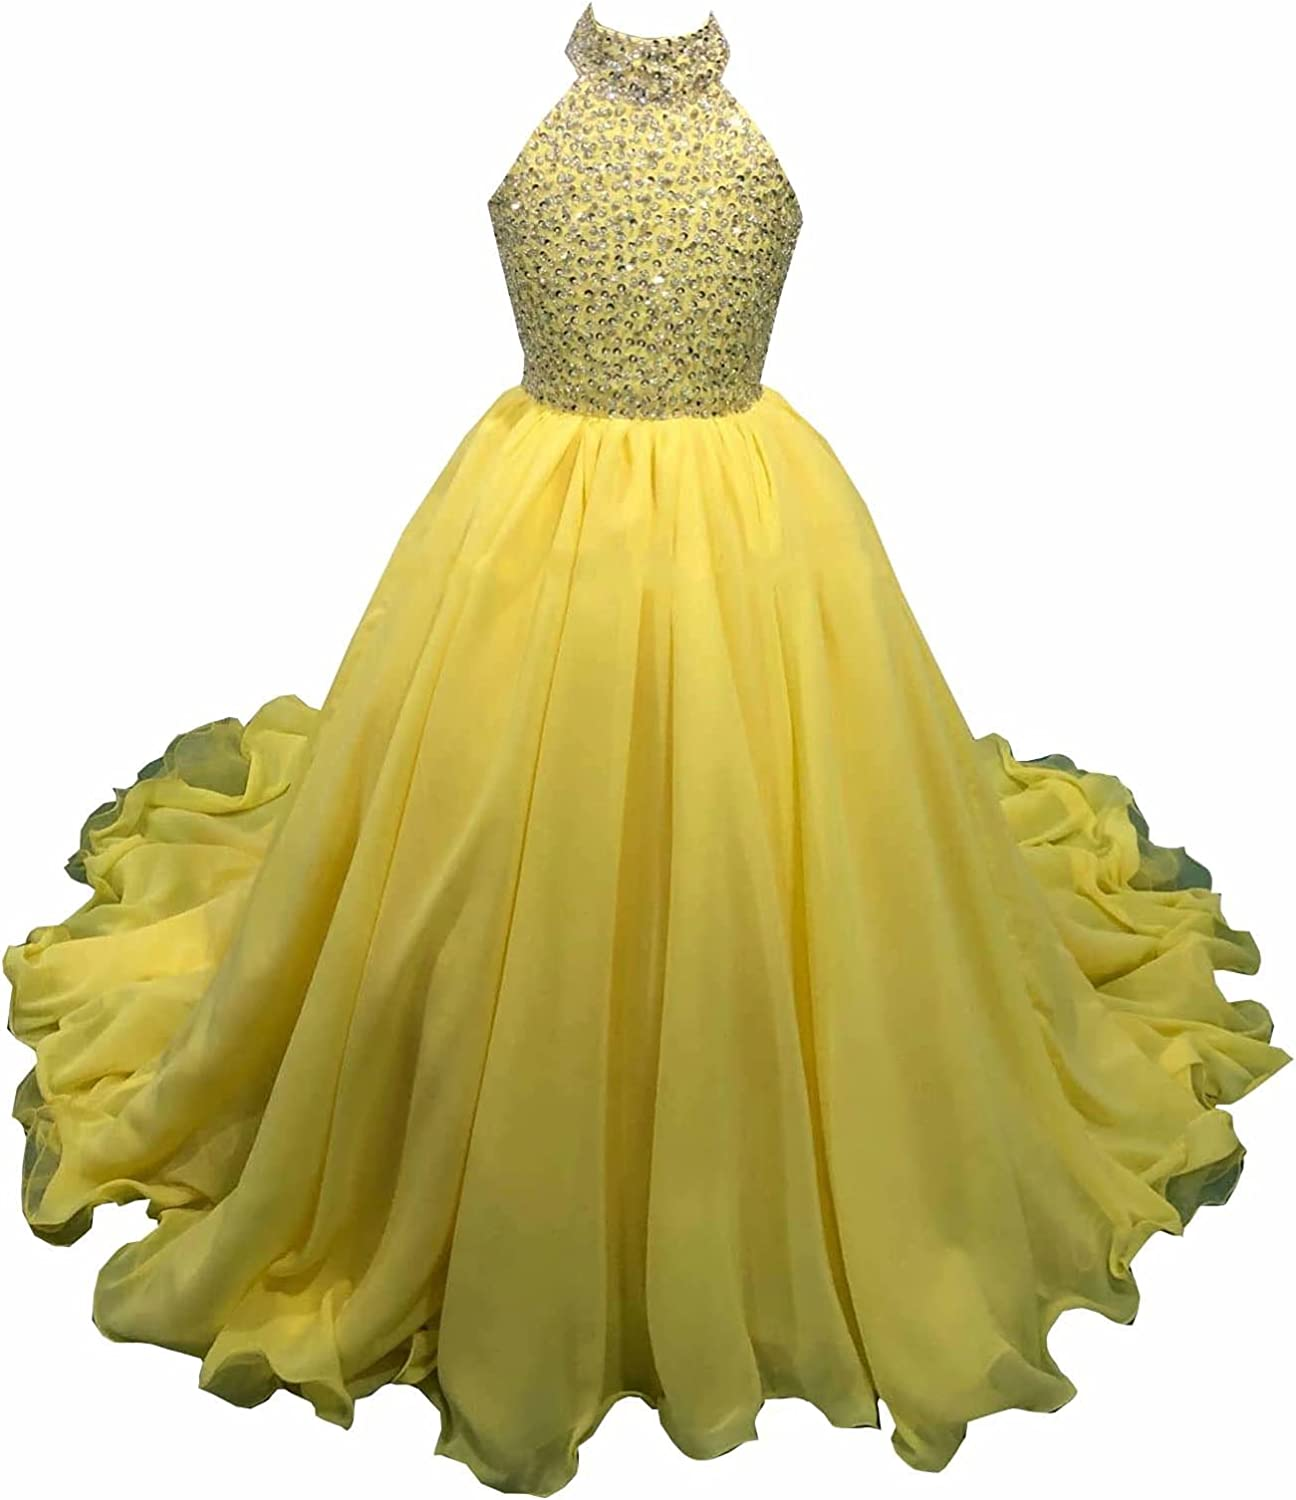 Mollybridal High Neck Chiffon Toddler Pageant Prom Formal Dresses for Little Girls Cupcake Beaded Rhinestones A line